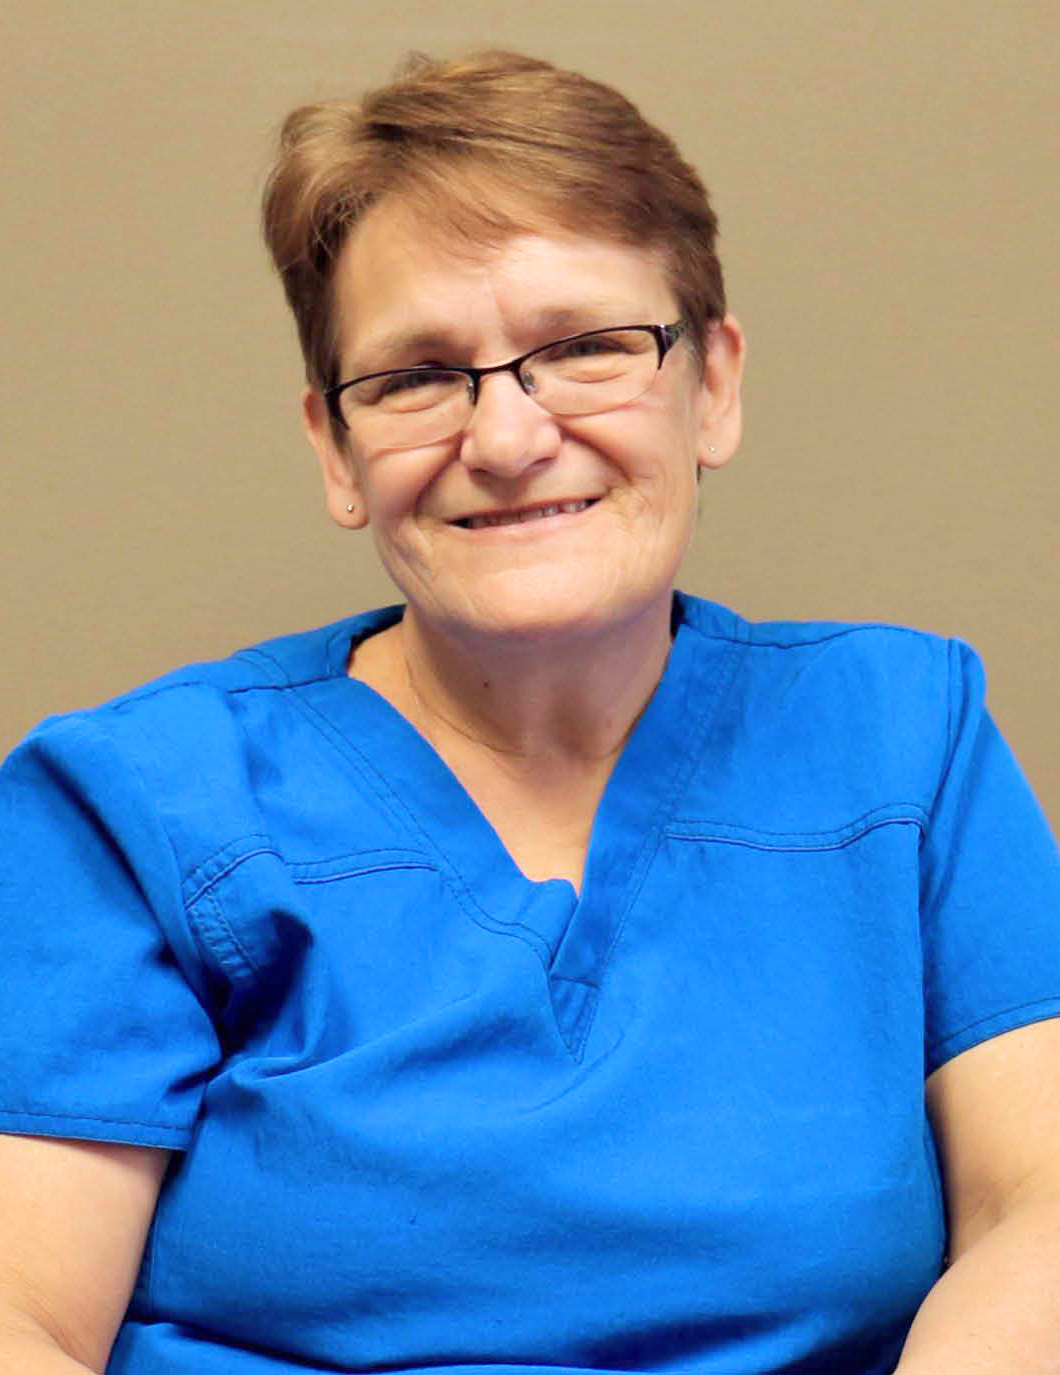 Celebrating The Vital Role Of Hospice Certified Nursing Assistants In Caring For Patients